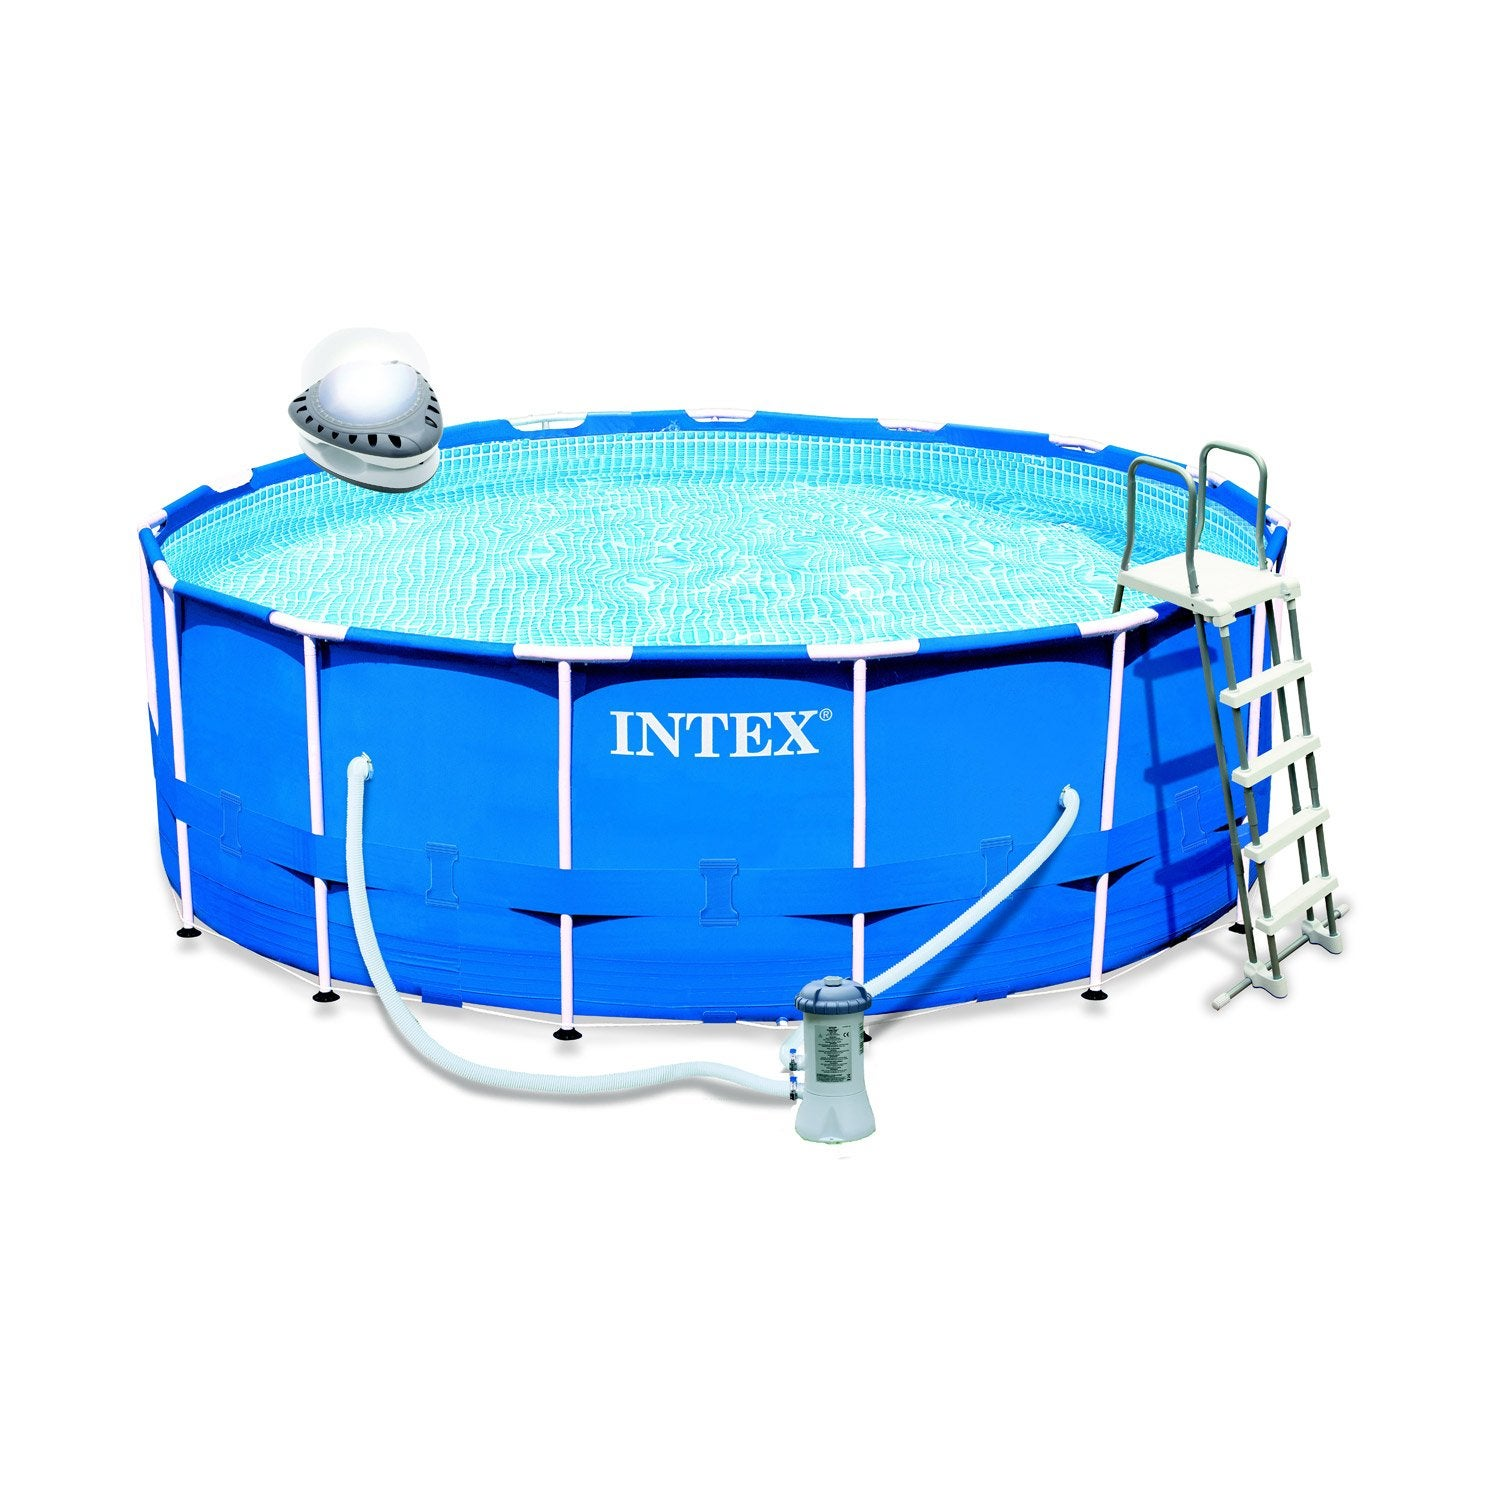 Piscine hors sol autoportante tubulaire ultra silver intex for Piscine intex 4 57 x 1 22